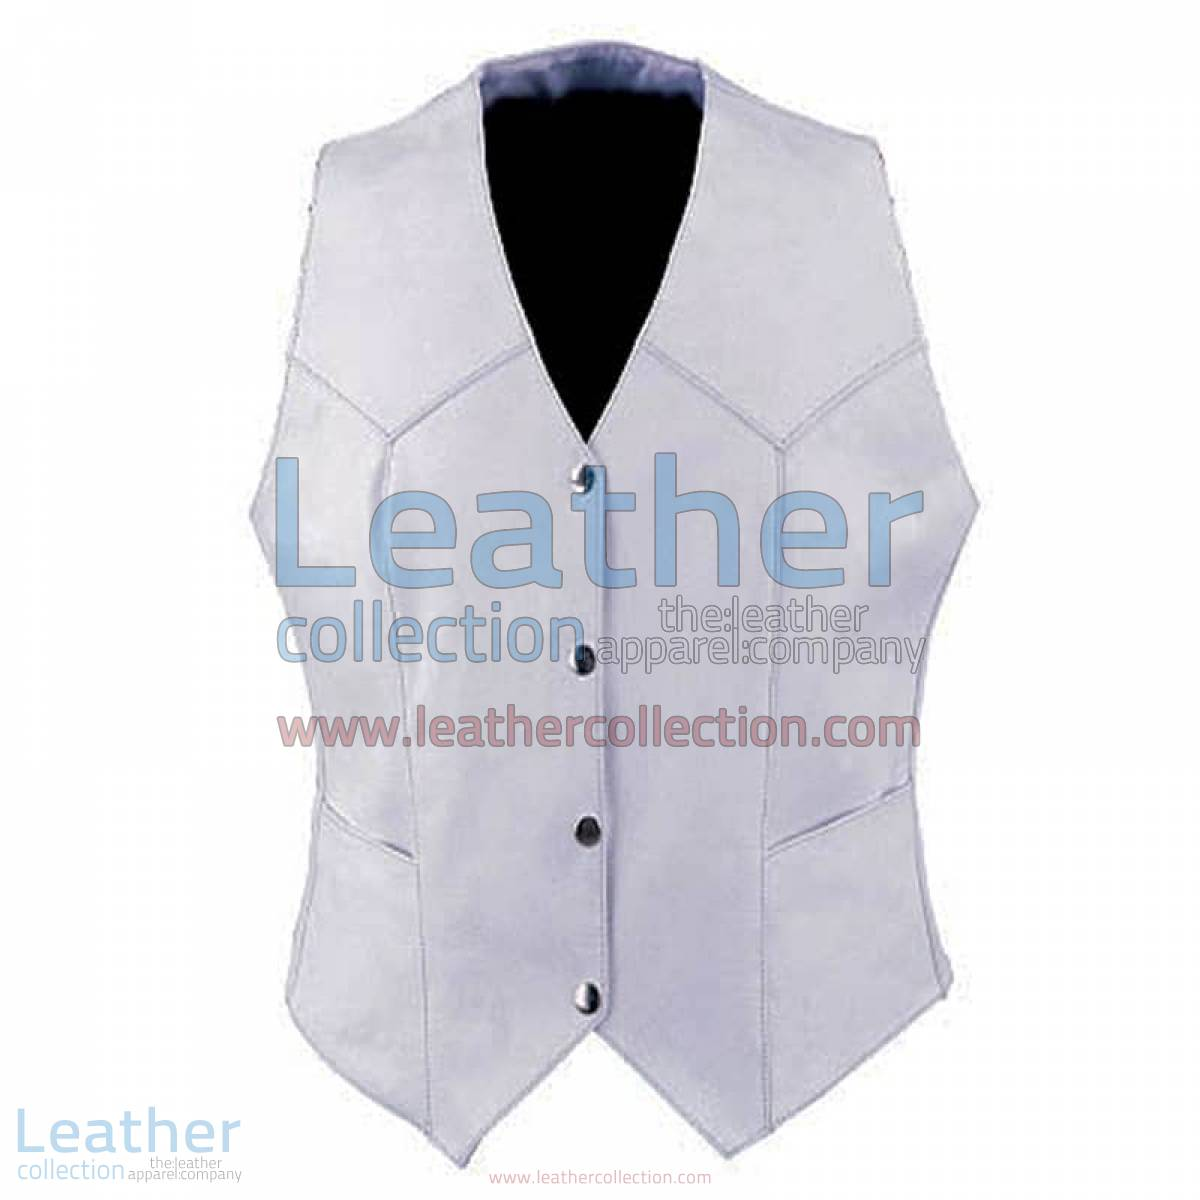 Ladies Vintage White Fashion Leather Vest | white leather vest,vintage vest